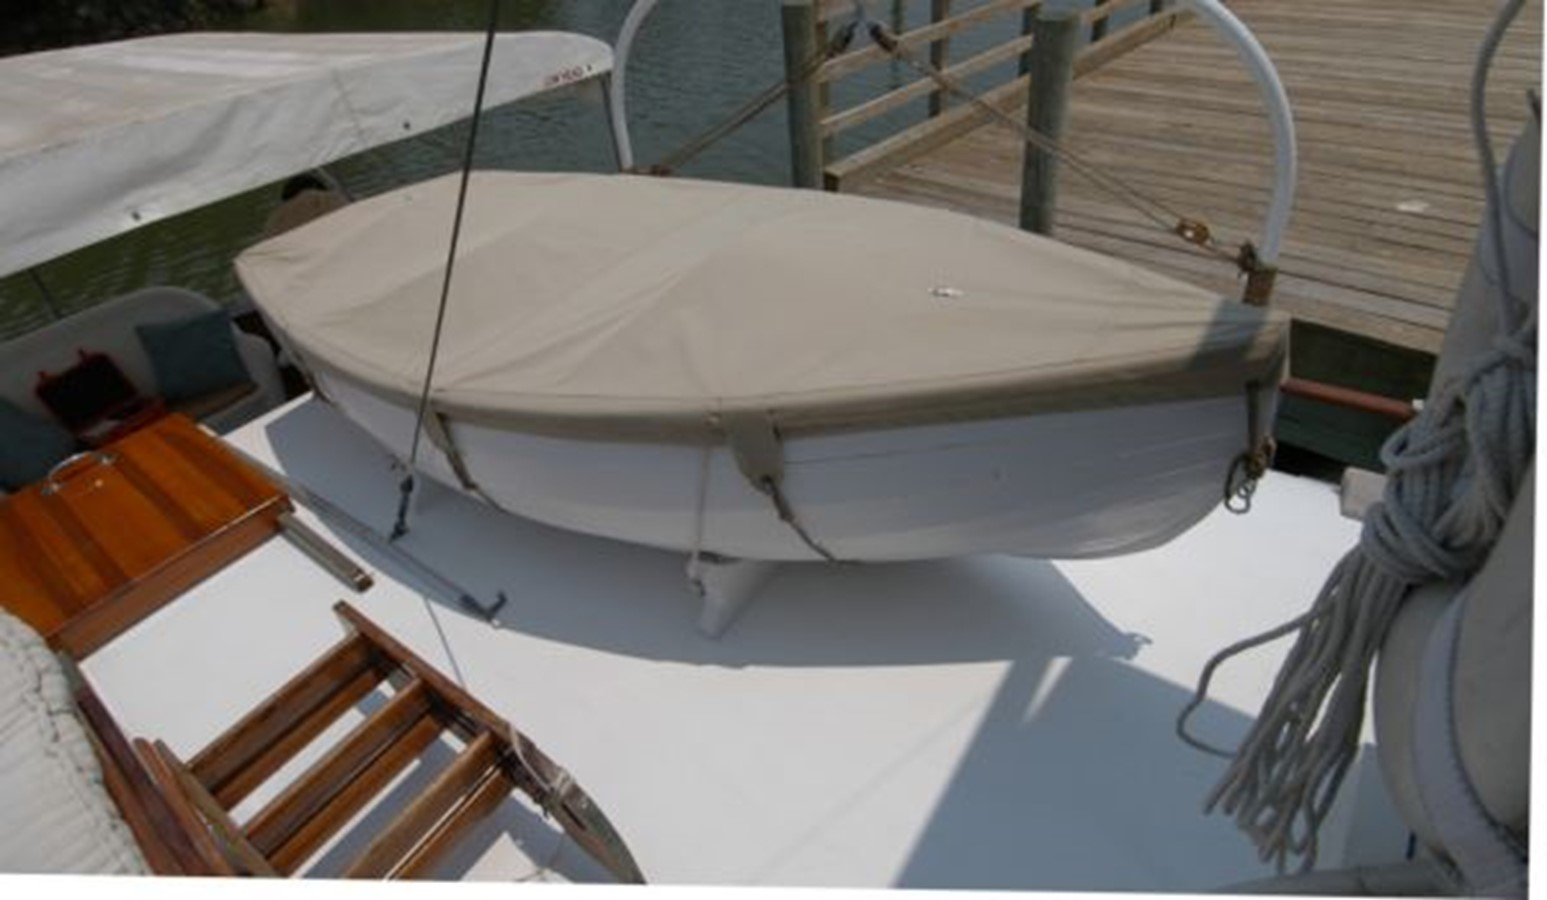 53' Elco - Dinghy - 53 ELCO MARINE For Sale